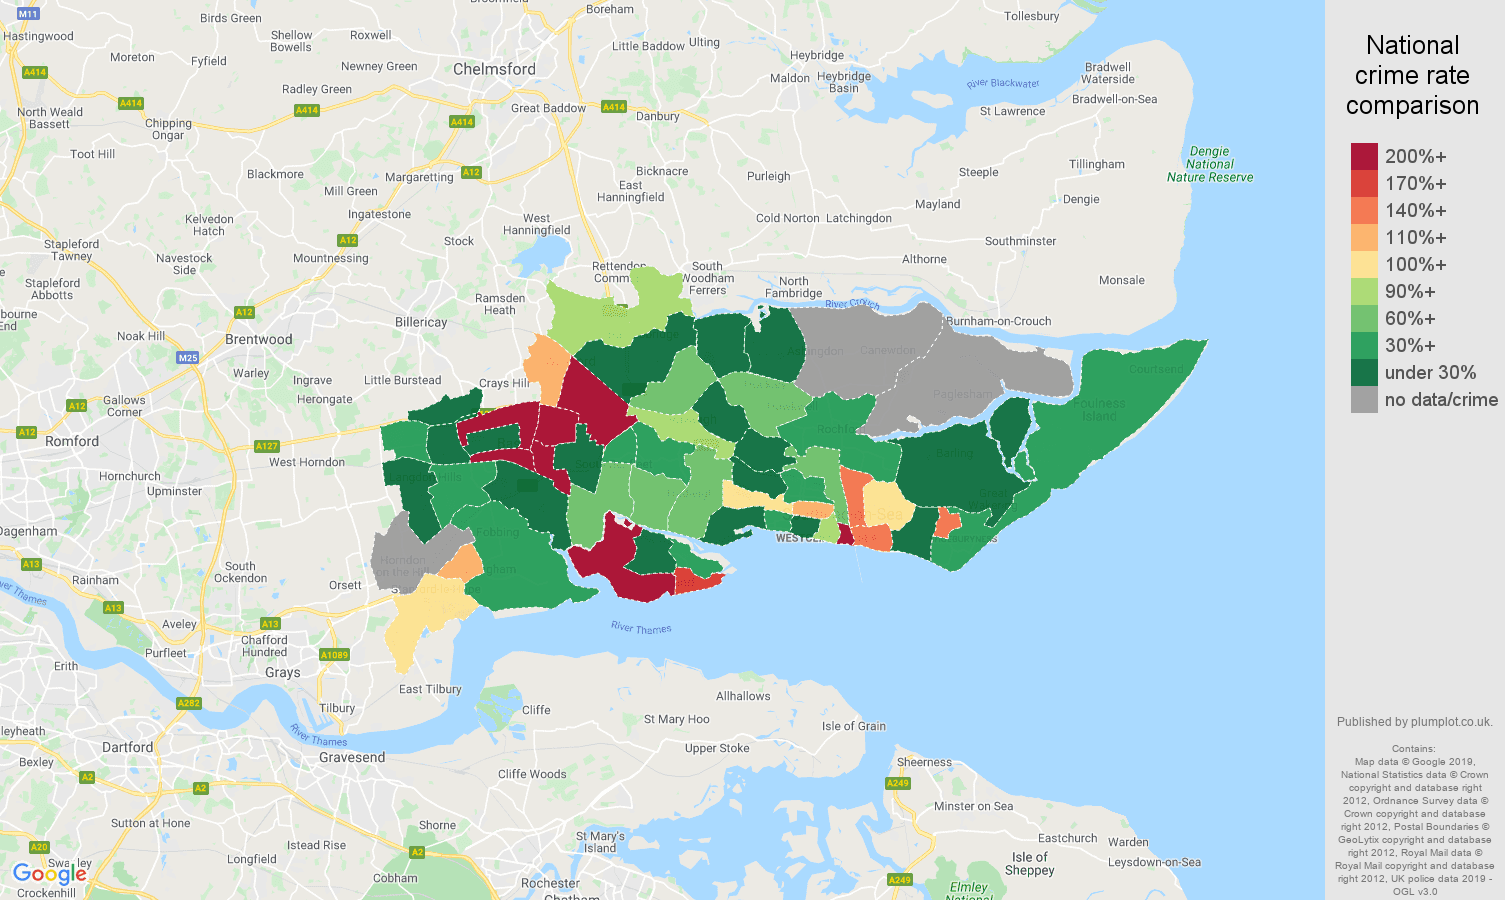 Southend on Sea shoplifting crime rate comparison map